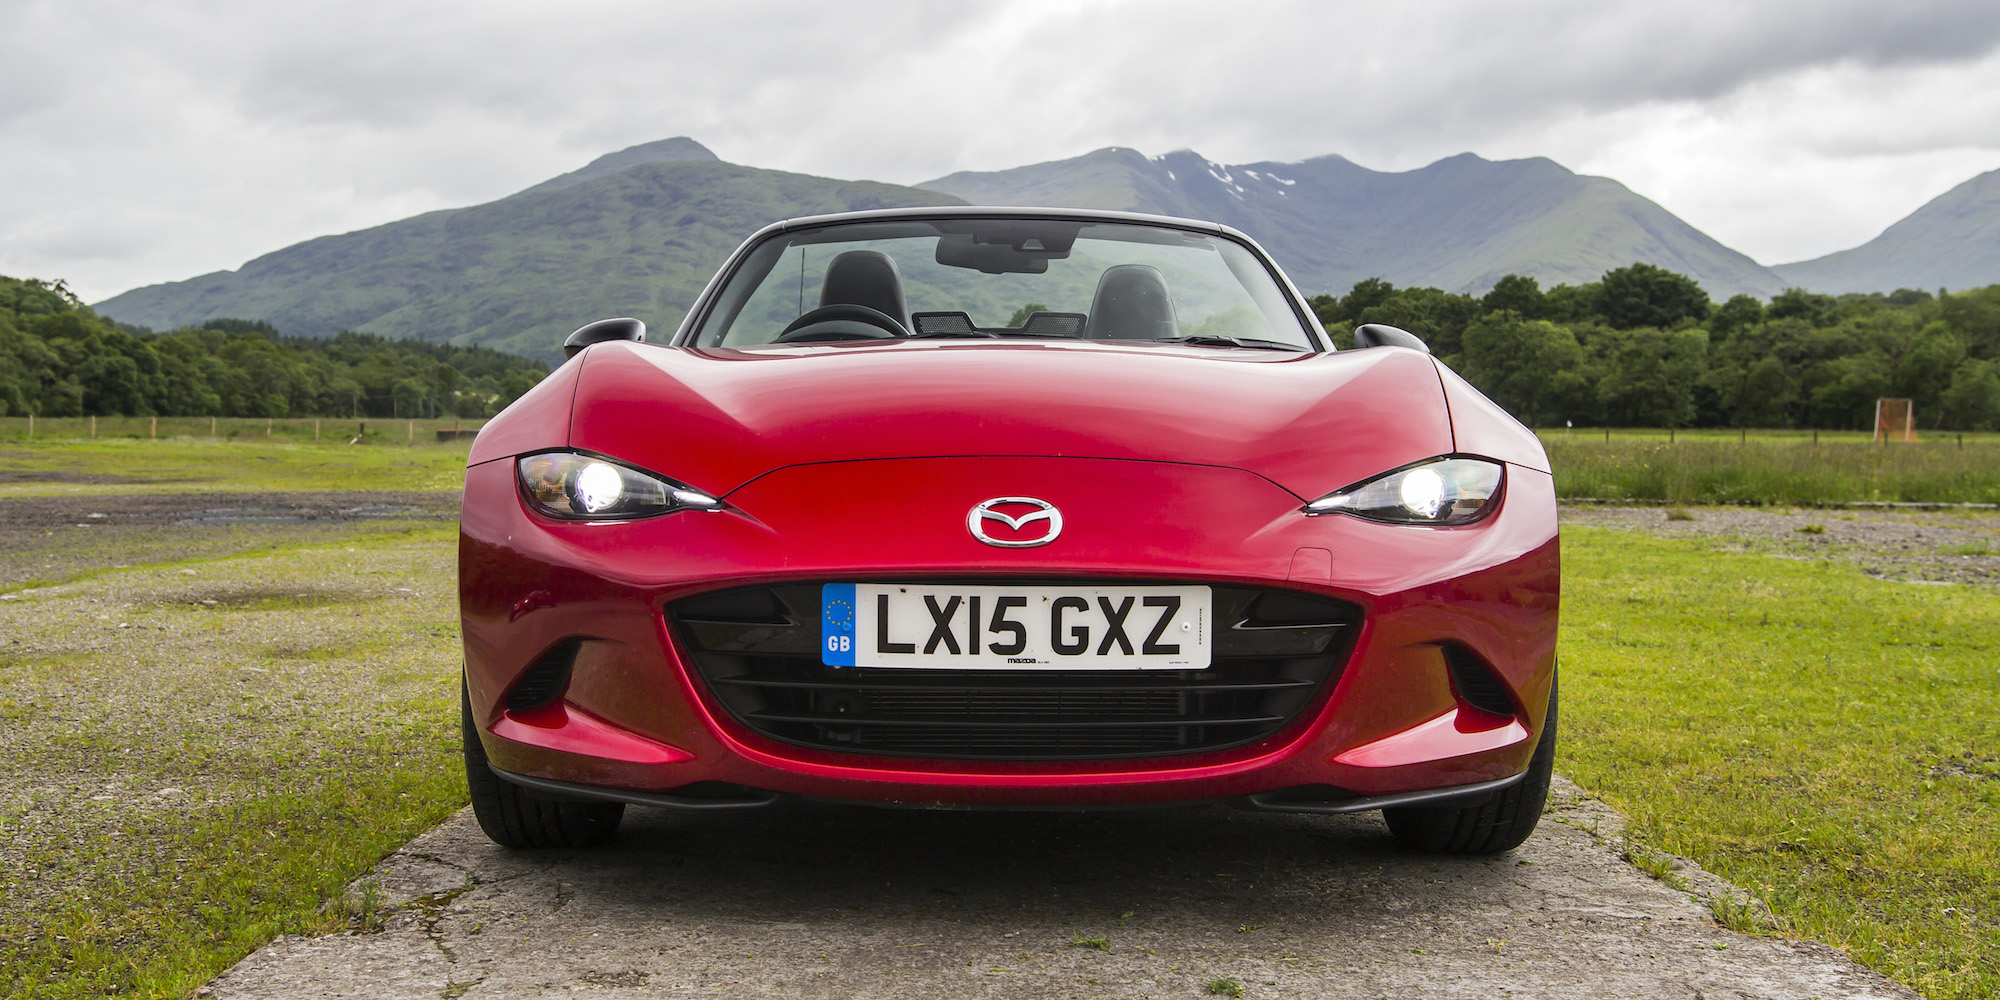 2016 Mazda Mx 5 Front End View (Photo 21 of 31)